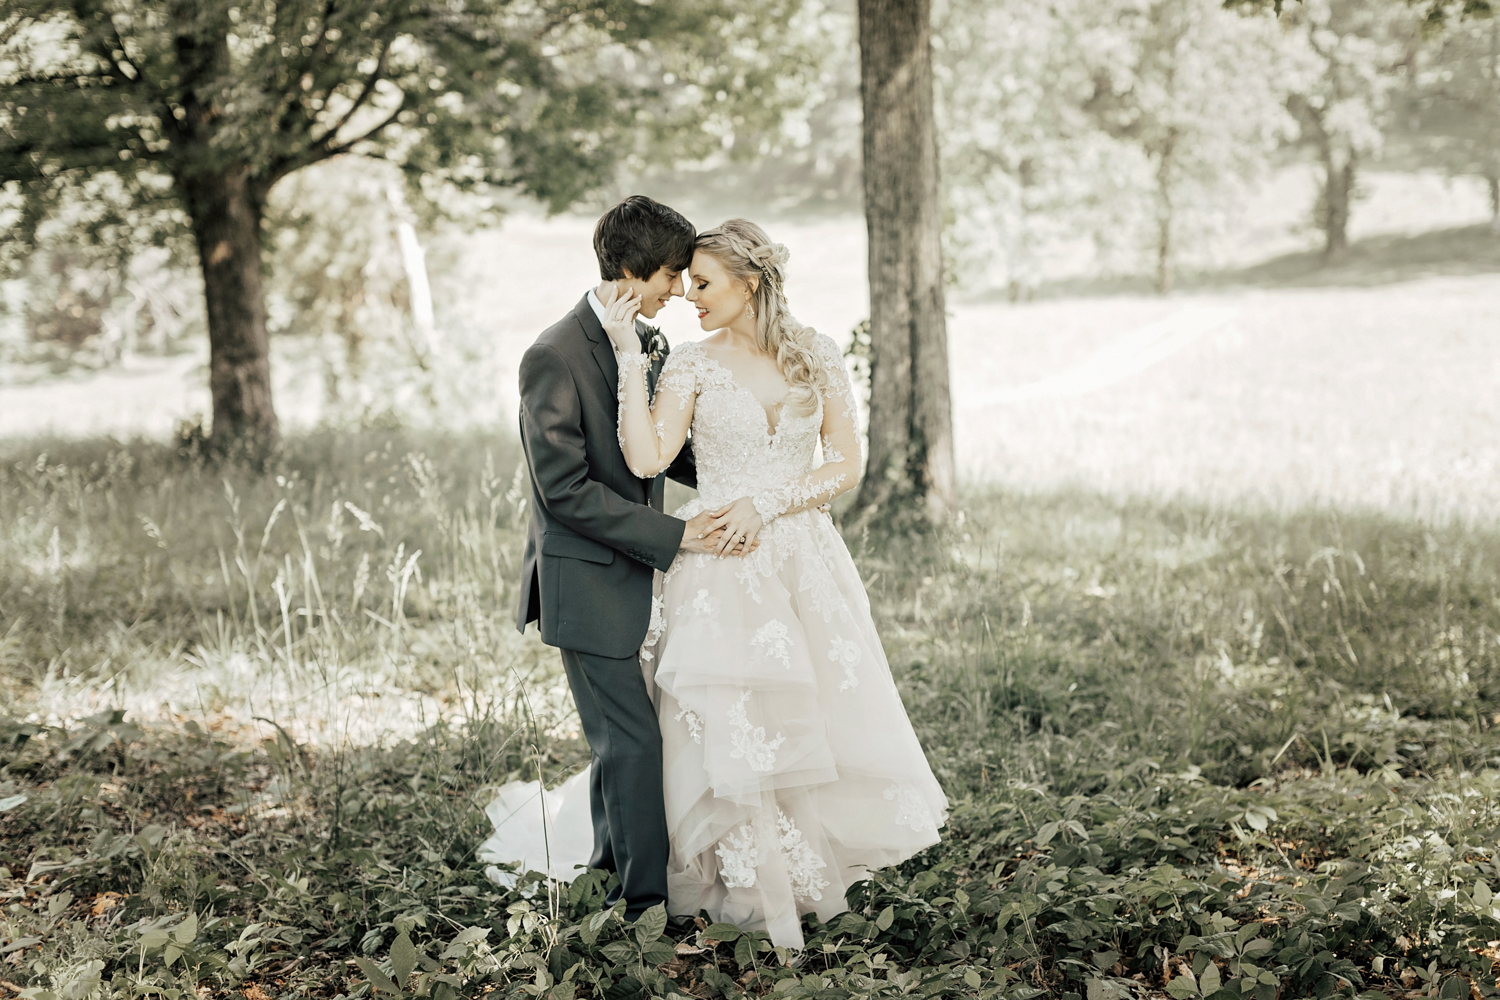 Alyssa + Dylan / Knoxville, Tennessee Fantasy Themed Wedding ...